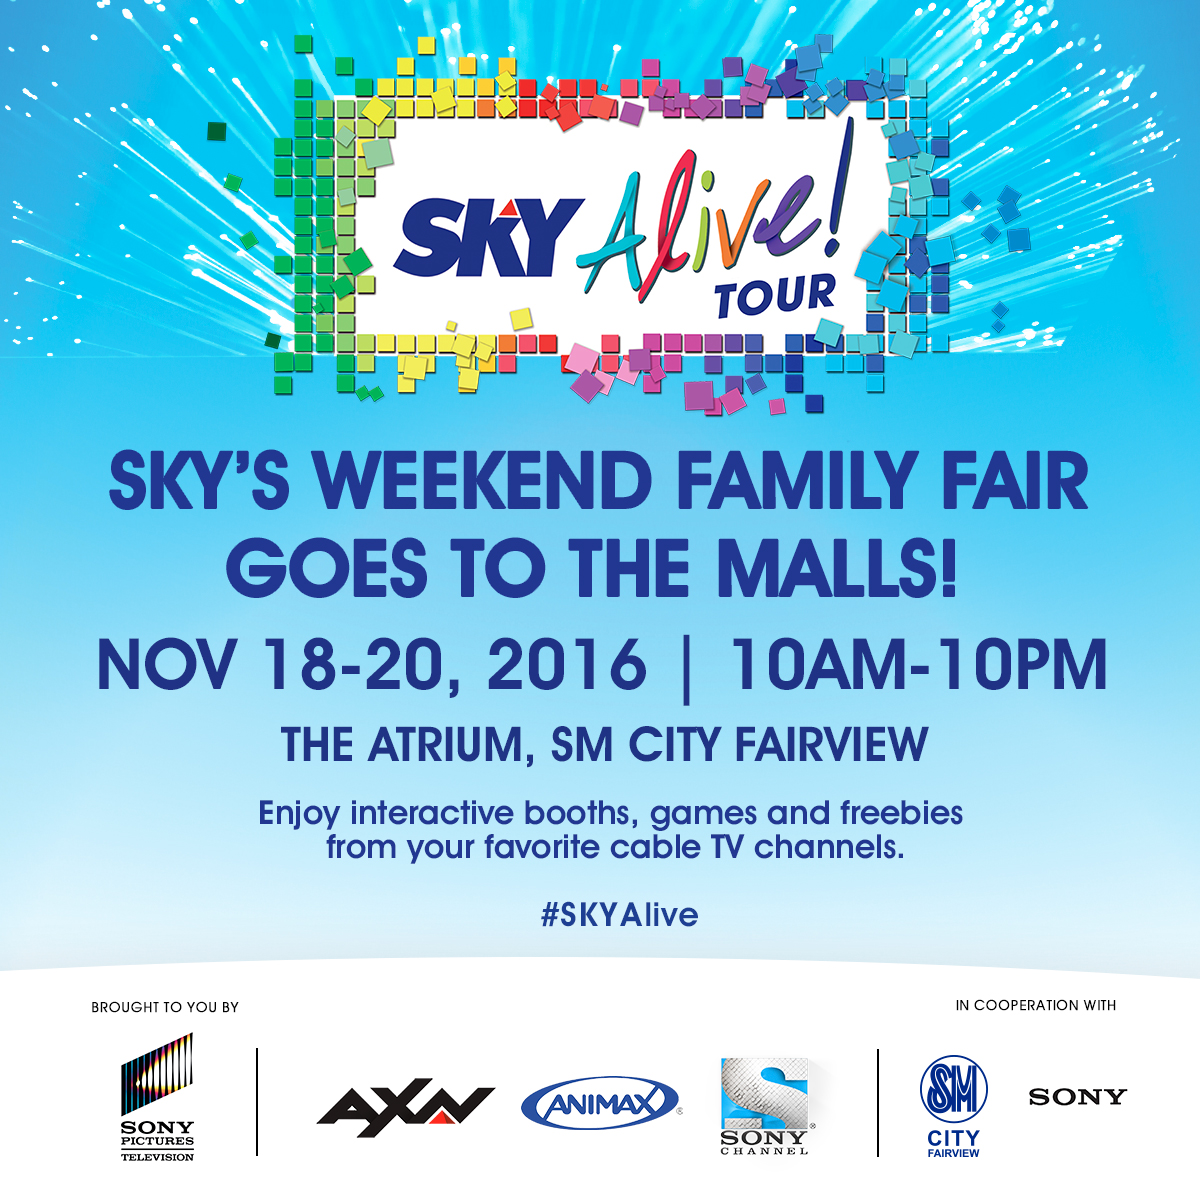 Fairview Skyalive tour